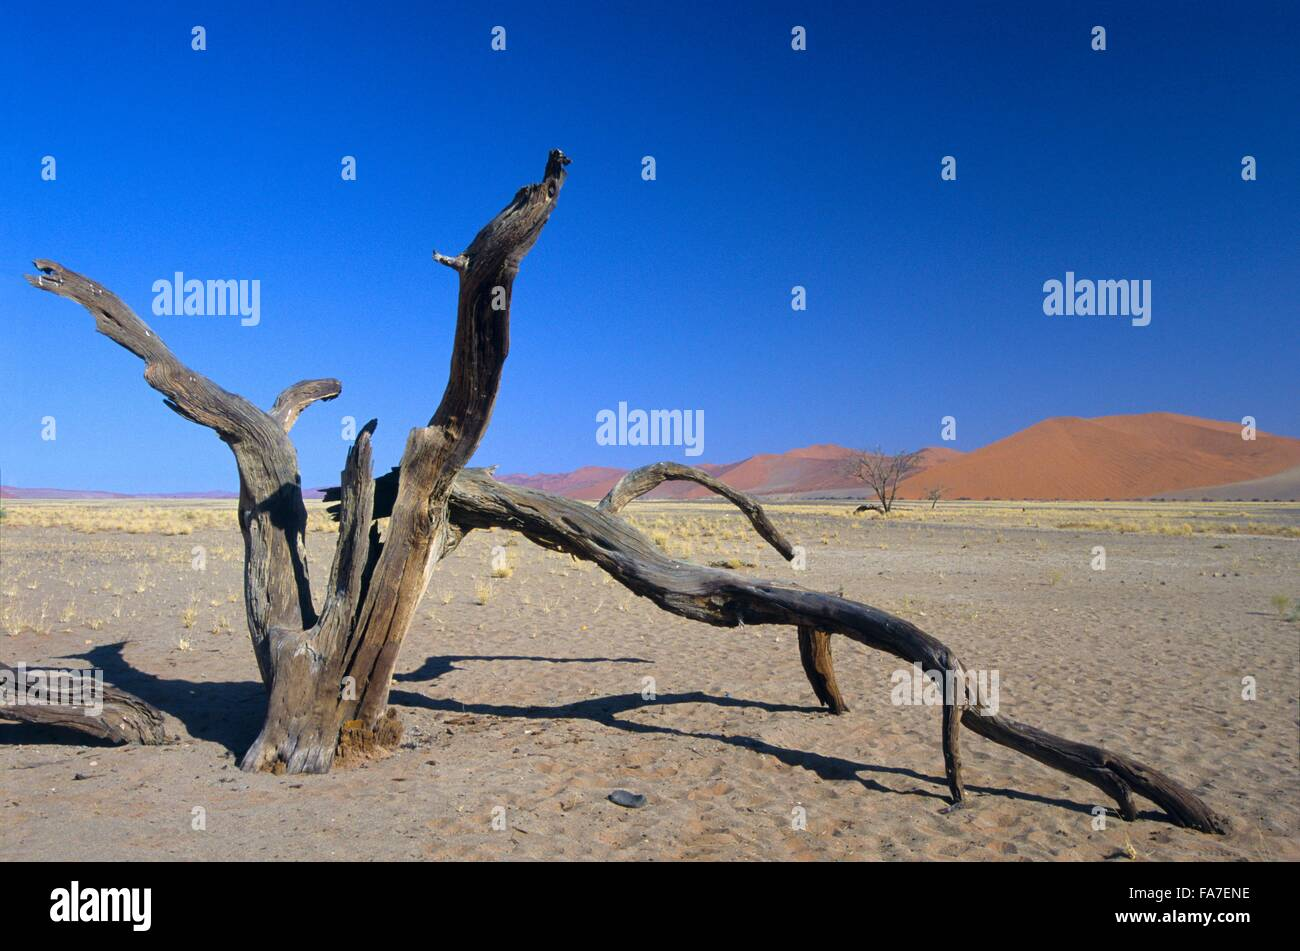 Namibia, Namib-Naukluft National park, Sesriem, near dune 45, dead acacia tree // Namibie, Namib-Naukluft National - Stock Image